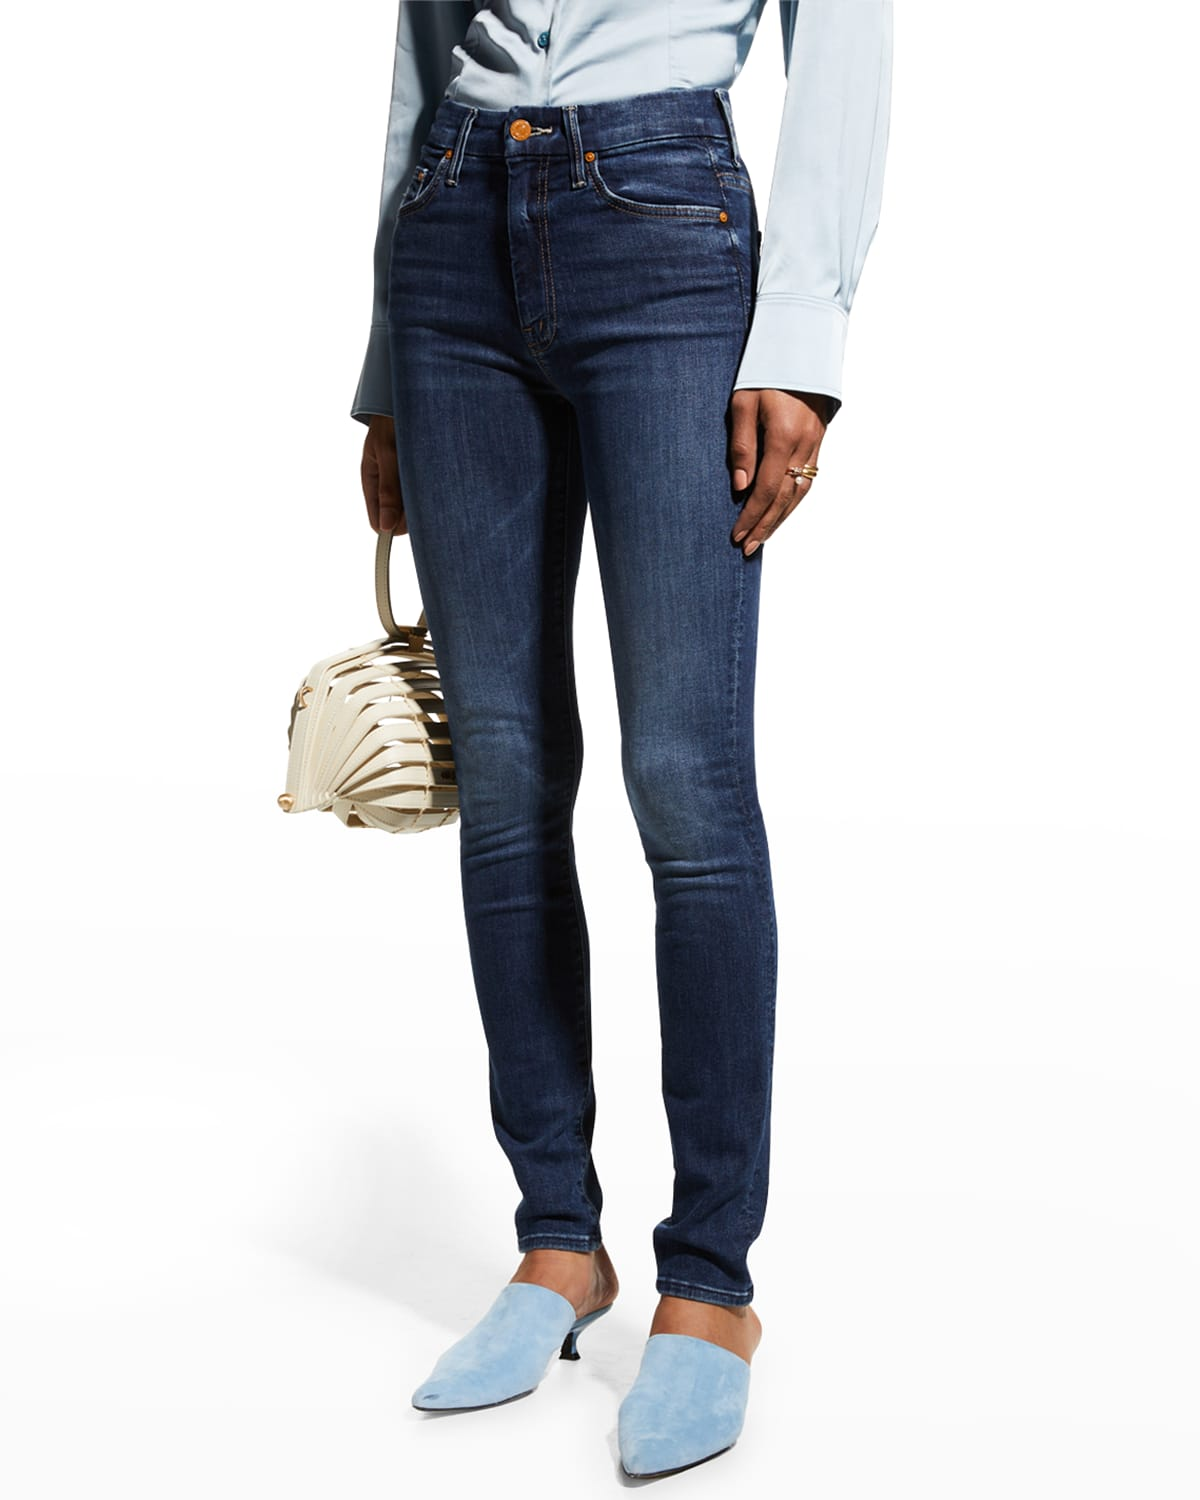 The High Waisted Looker Skinny Jeans